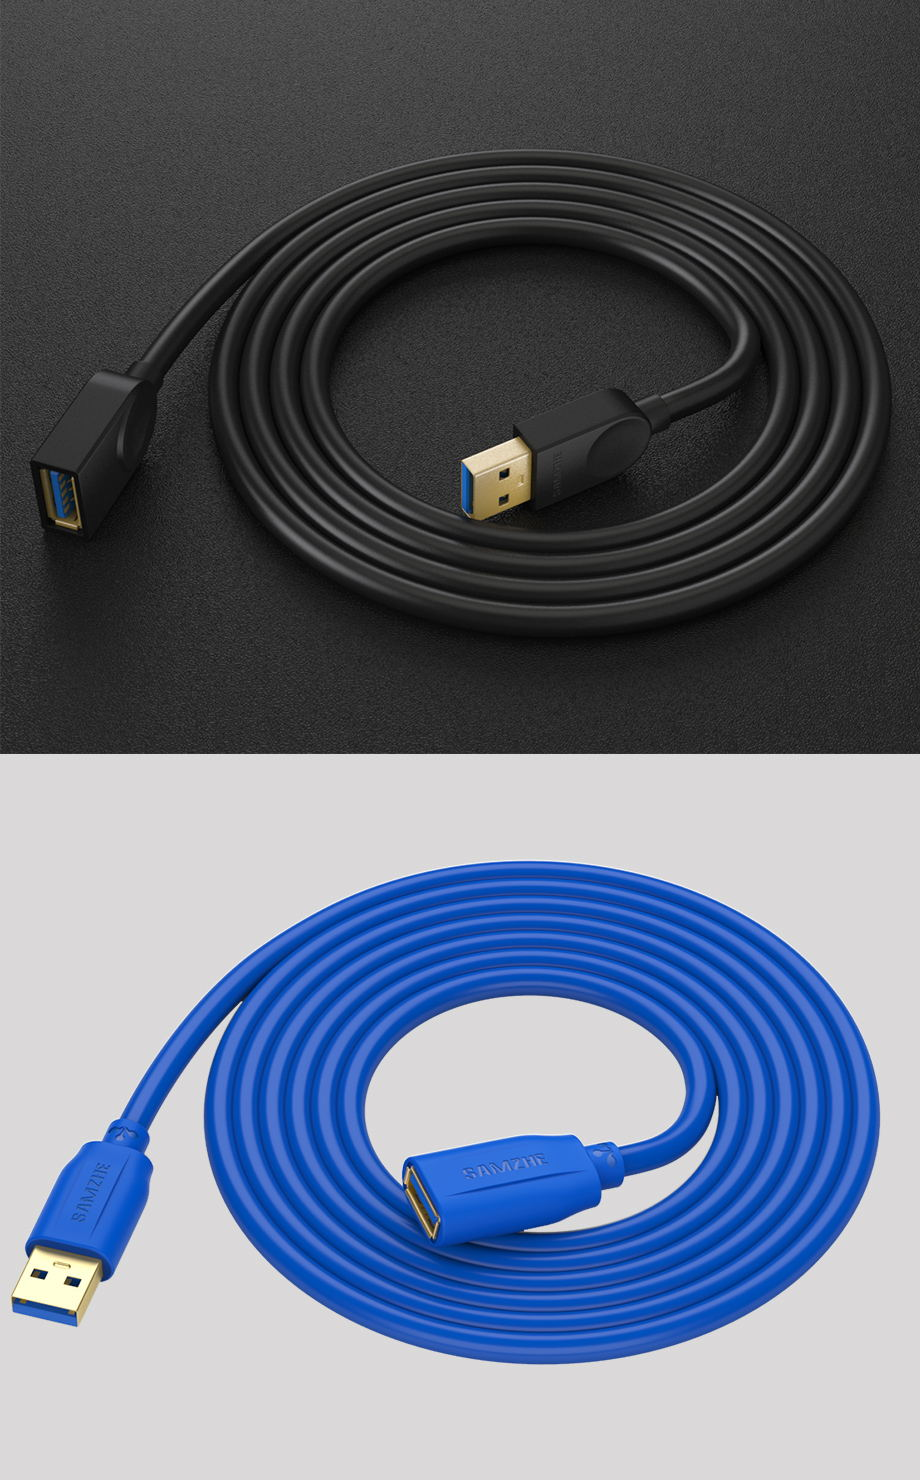 HTB1oQ4lXQKWBuNjy1zjq6AOypXal SAMZHE USB 3.0/2.0 Extension Cable Flat Extend Cable AM/AF 0.5m/1m/1.5m/2m/3m For PC TV PS4 Computer Laptop Extender